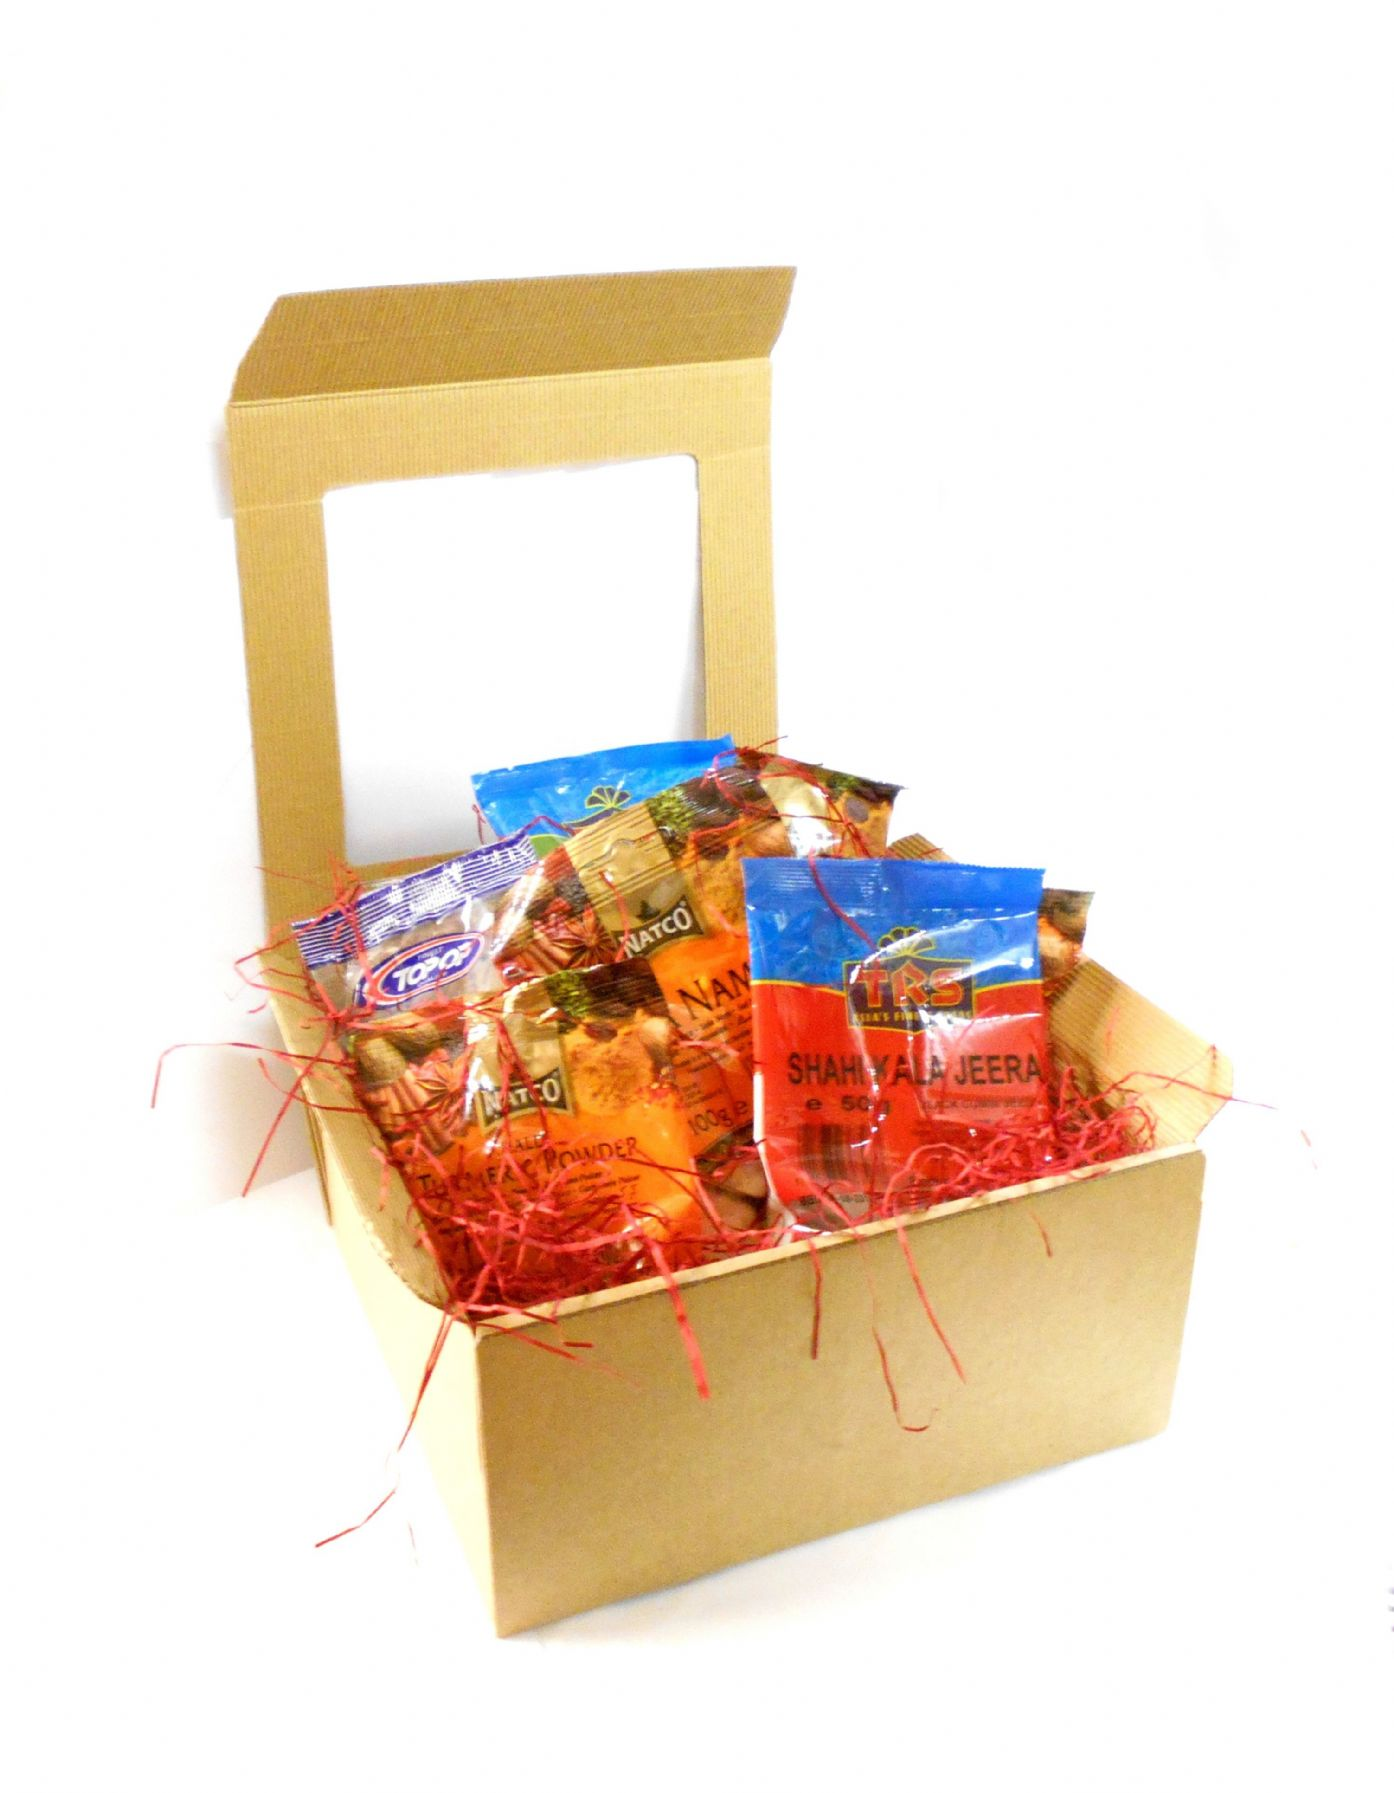 The Indian Christmas Gift Box